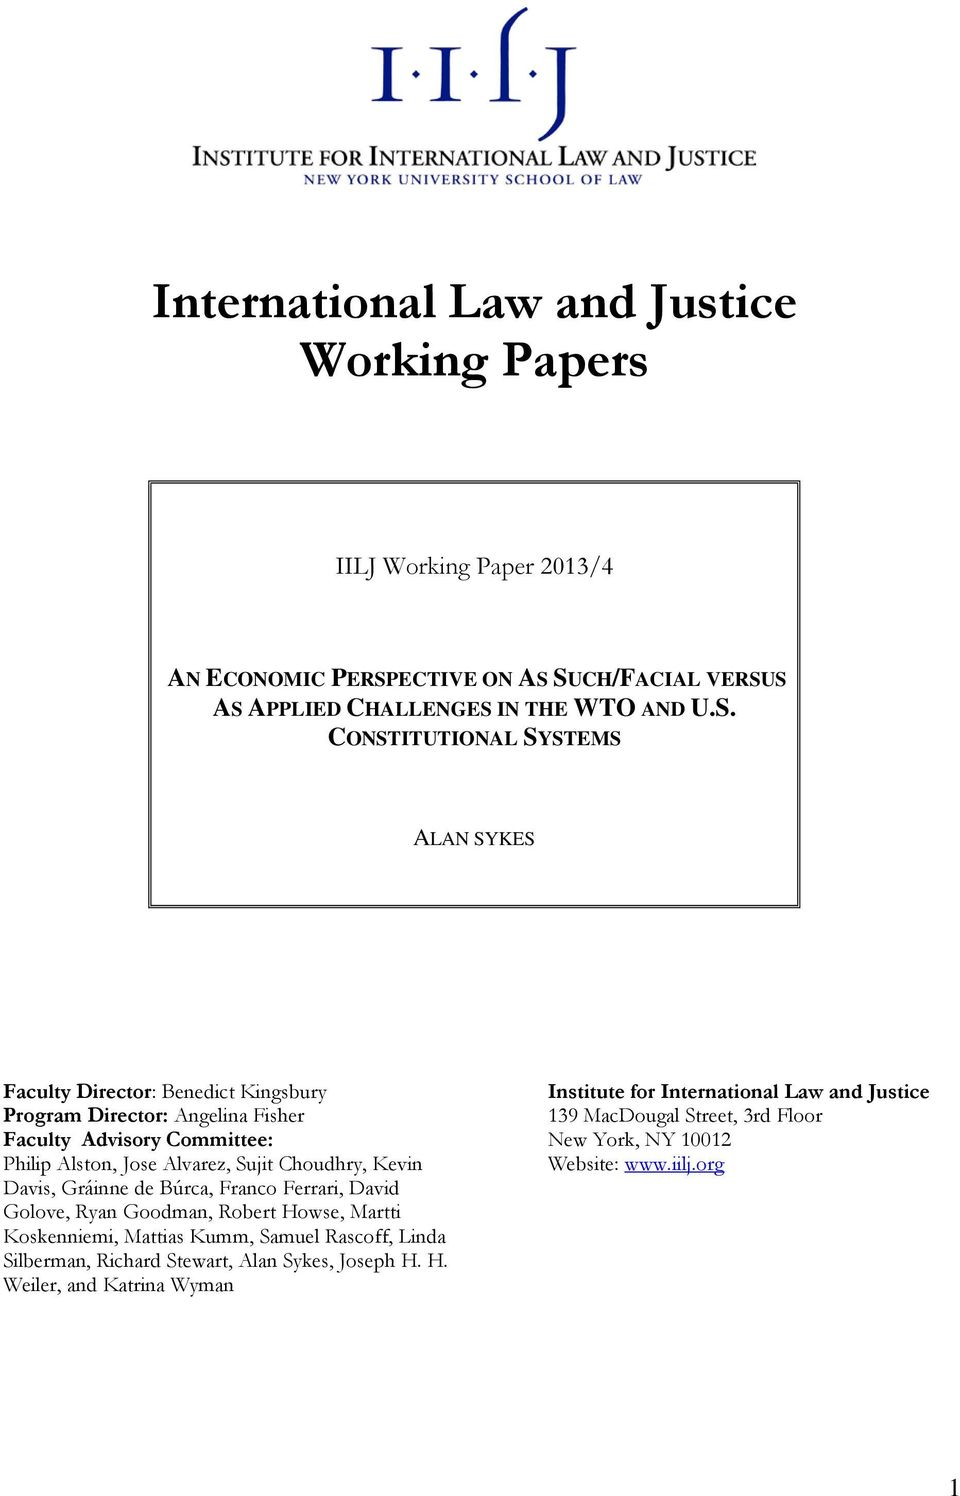 SUCH/FACIAL VERSUS AS APPLIED CHALLENGES IN THE WTO AND U.S. CONSTITUTIONAL SYSTEMS ALAN SYKES Faculty Director: Benedict Kingsbury Institute for International Law and